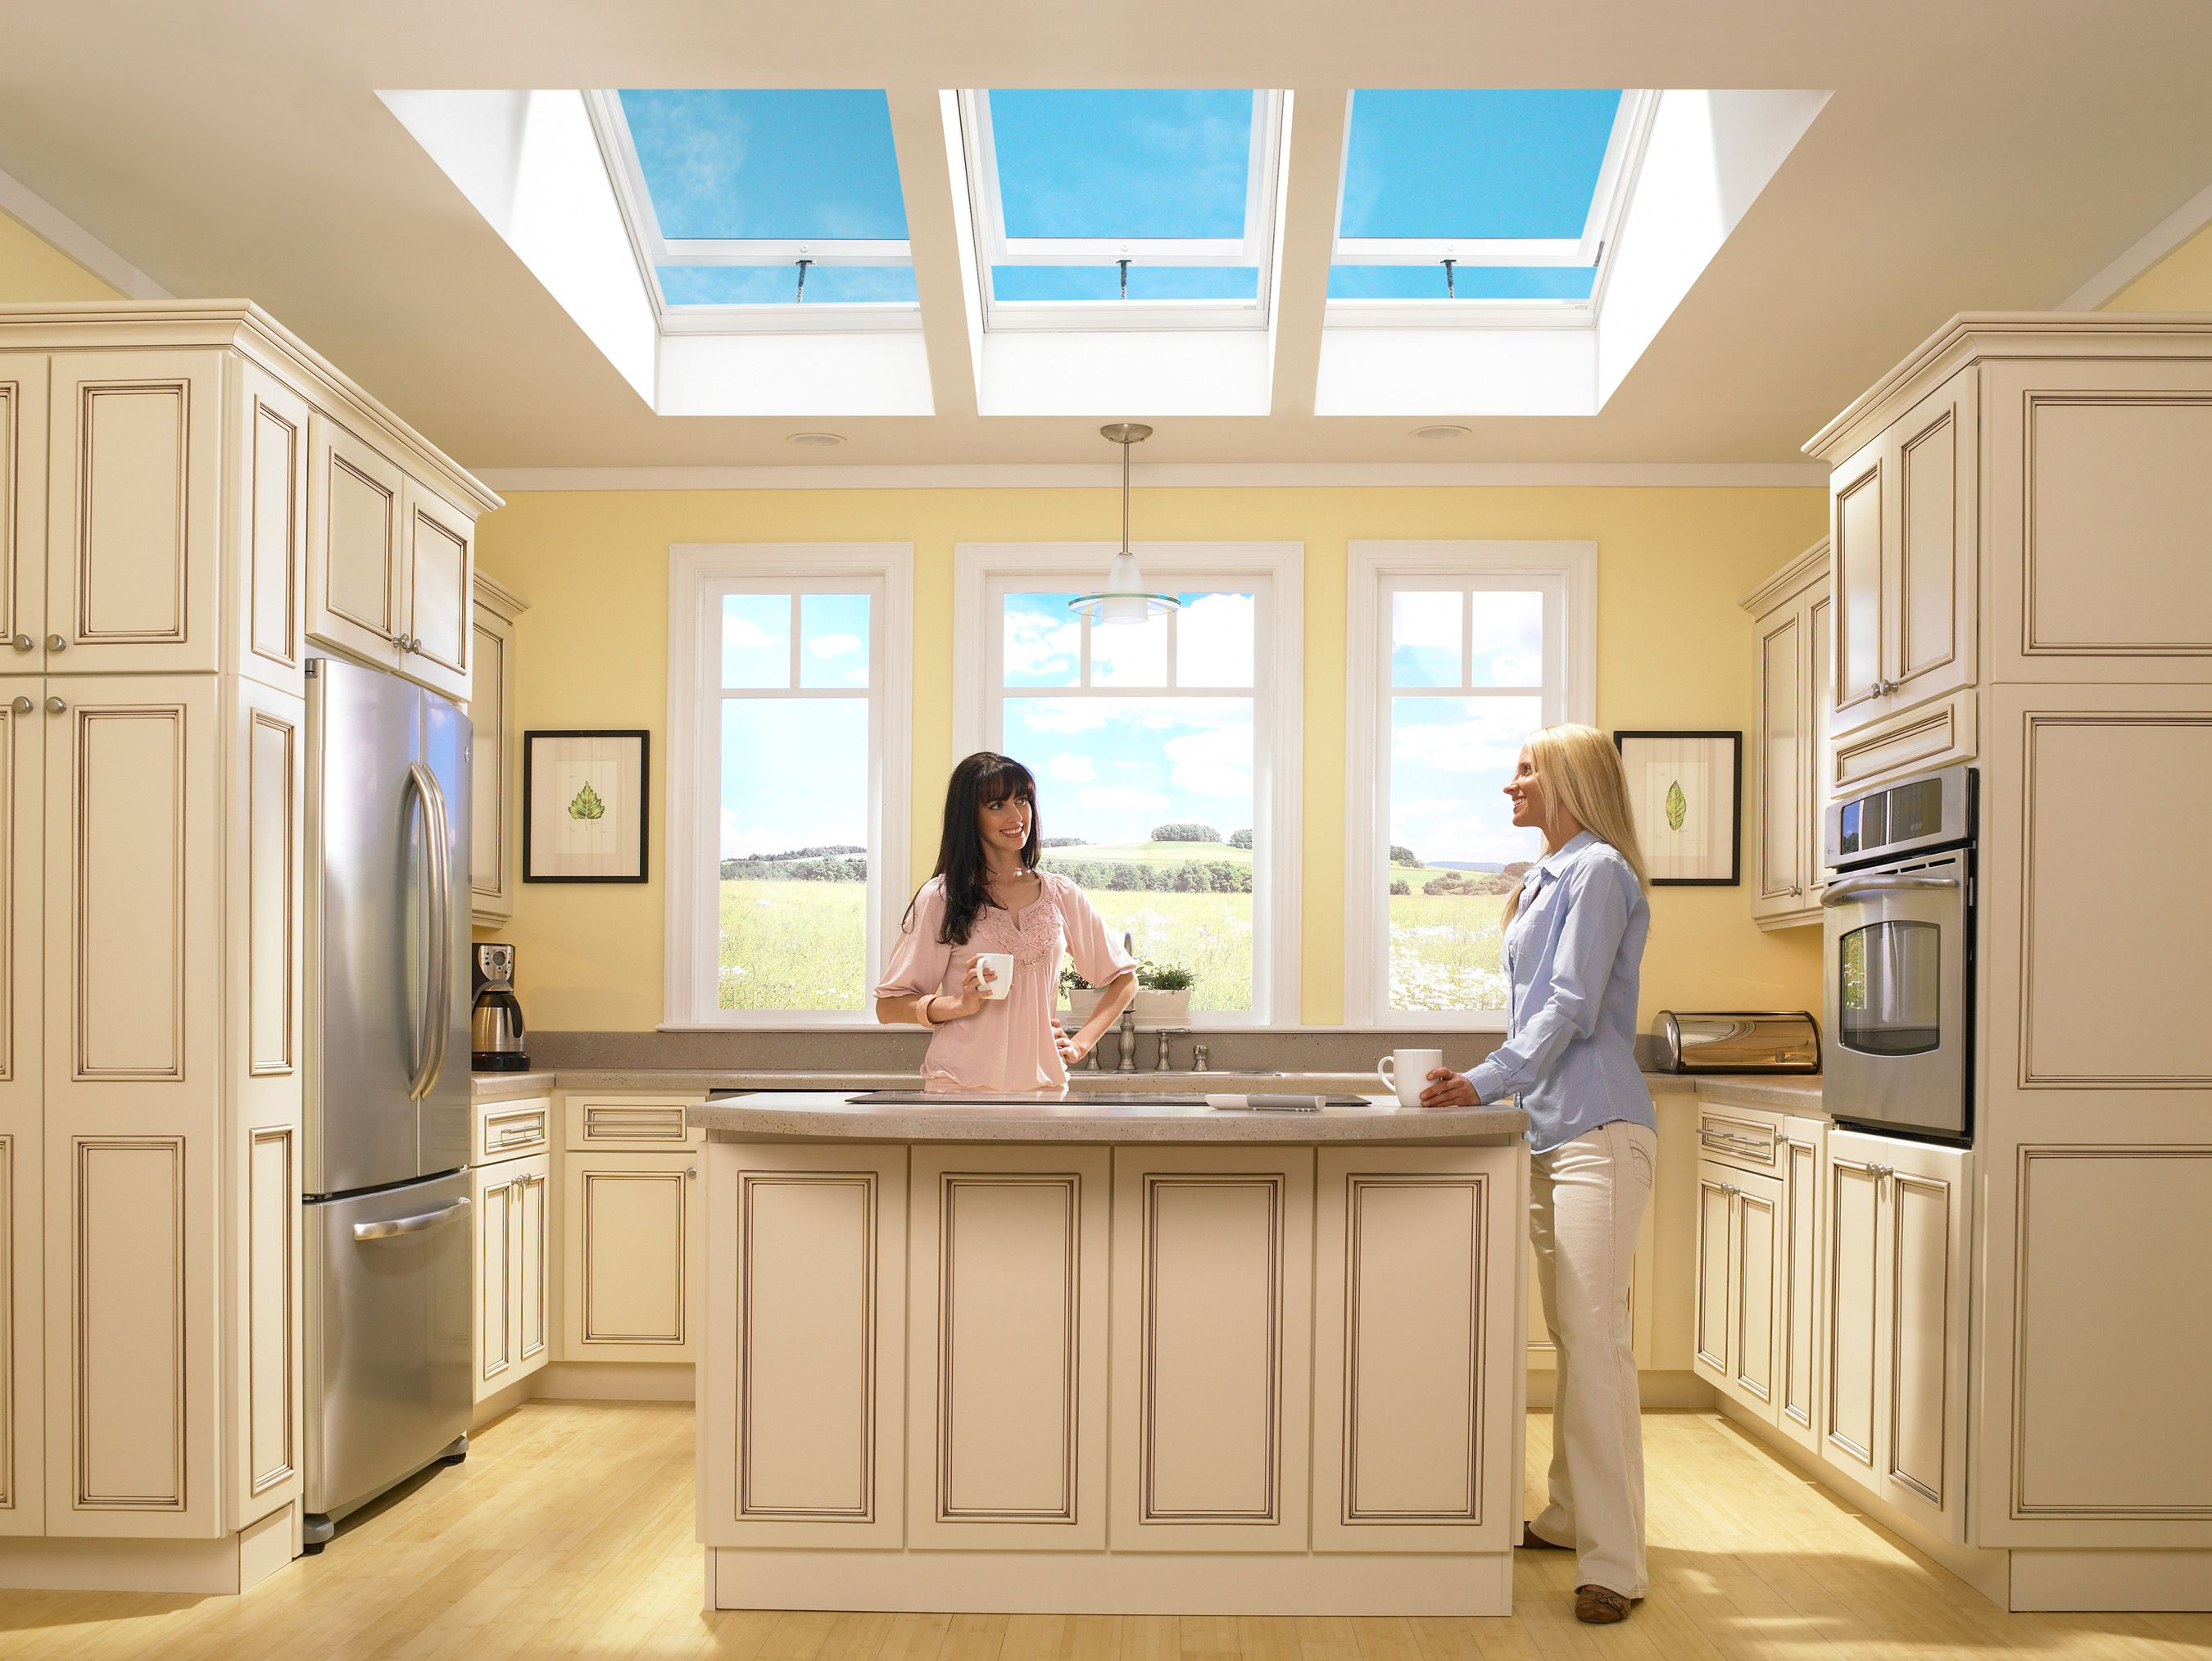 Velux window ideas  exterior design vivacious velux skylights for your roof window